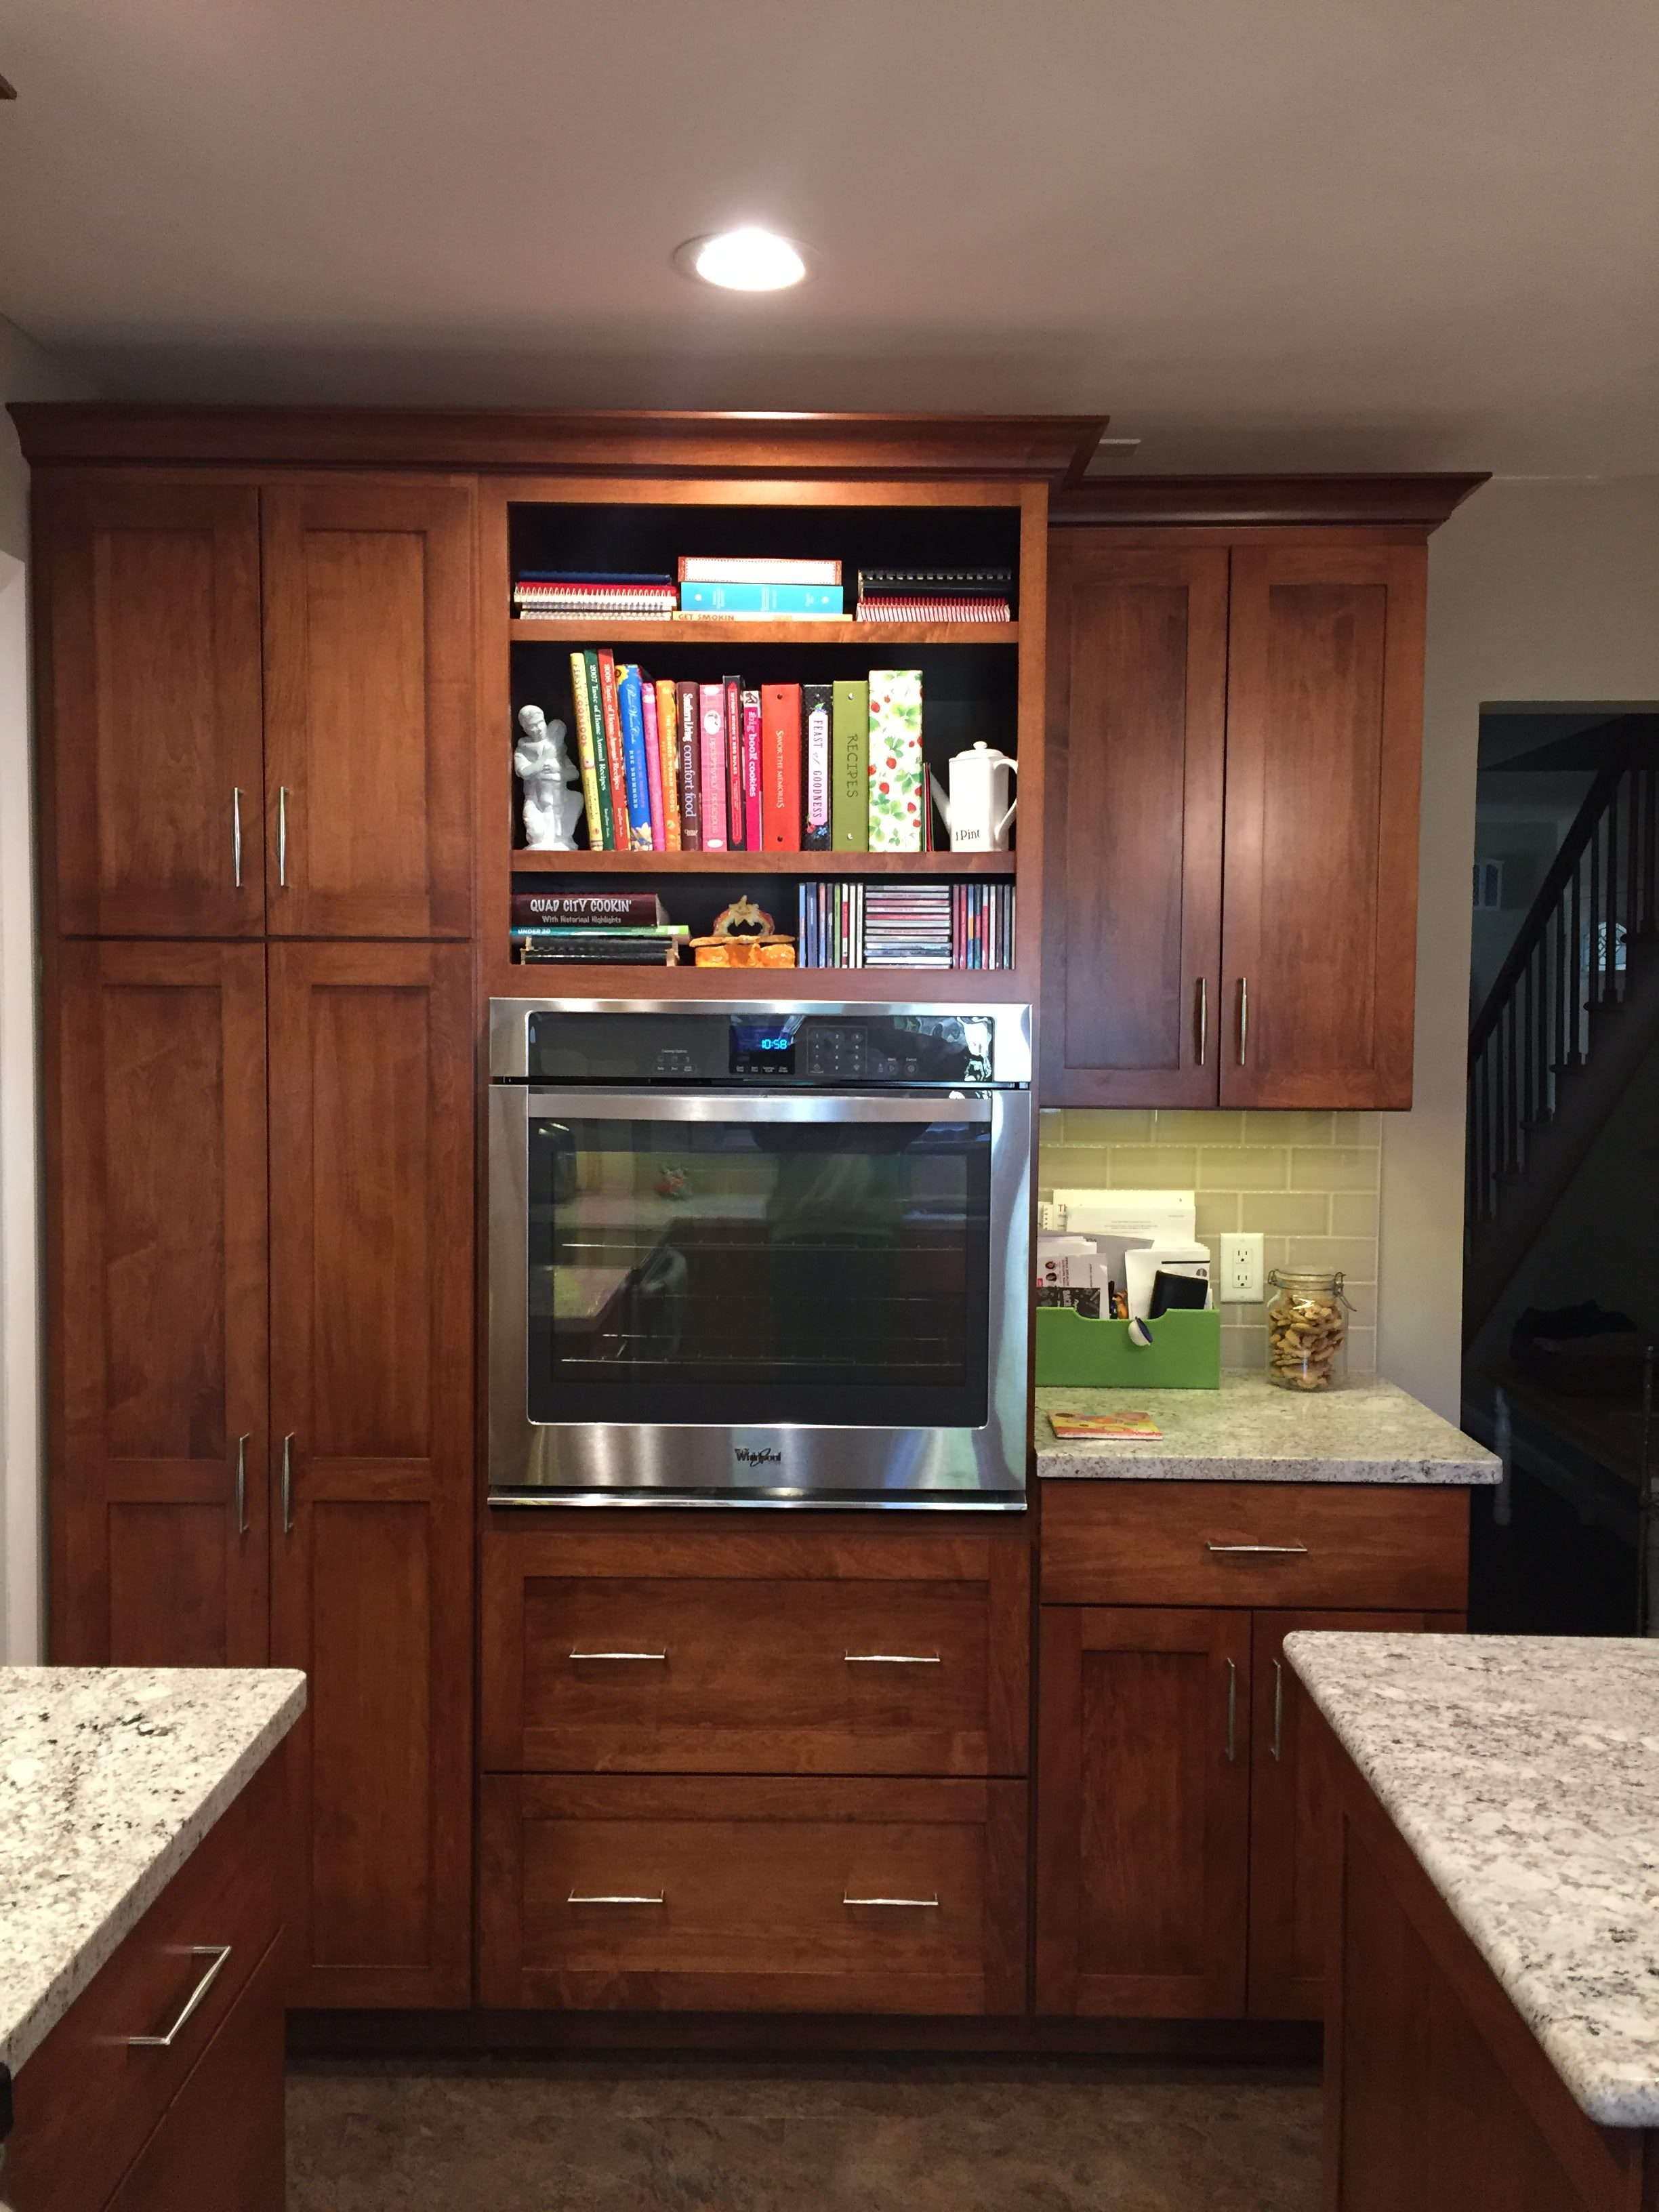 timberline cabinetry design   kitchen cabinets quad cities timberline cabinetry design  angled kitchen cabinet  picturesque      rh   iscode co